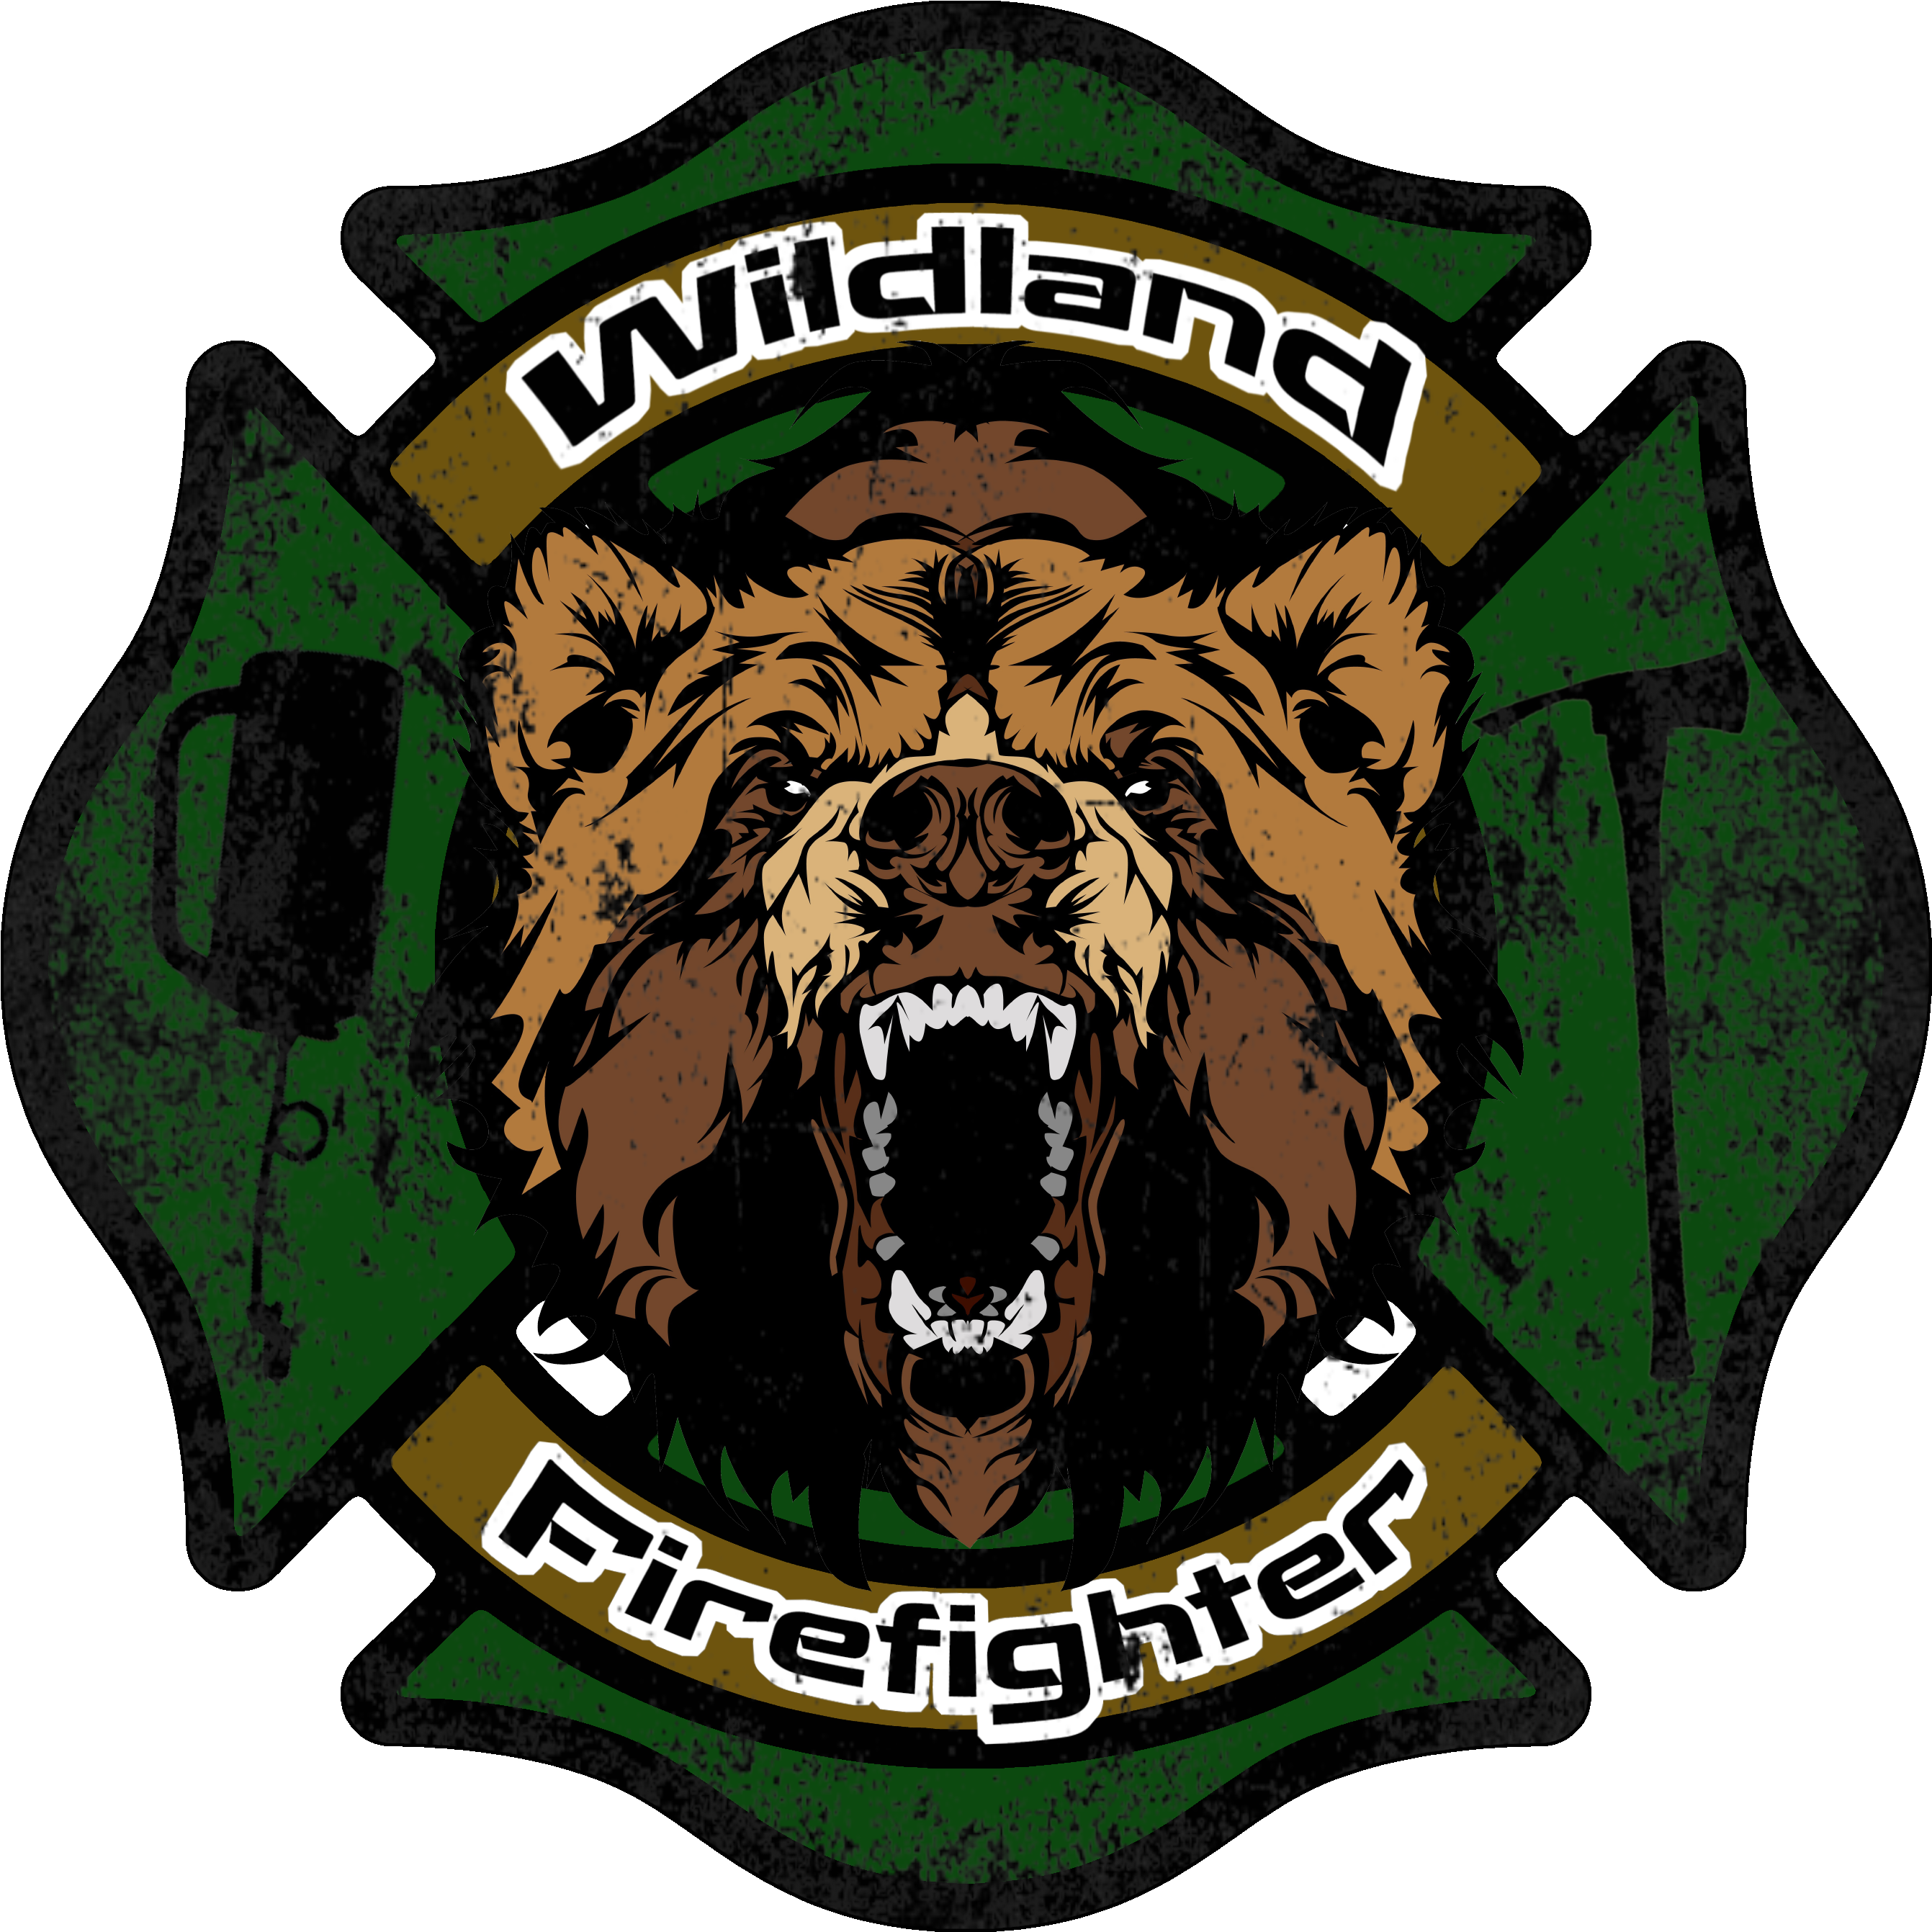 Wildland Firefighter Decal Clipart.